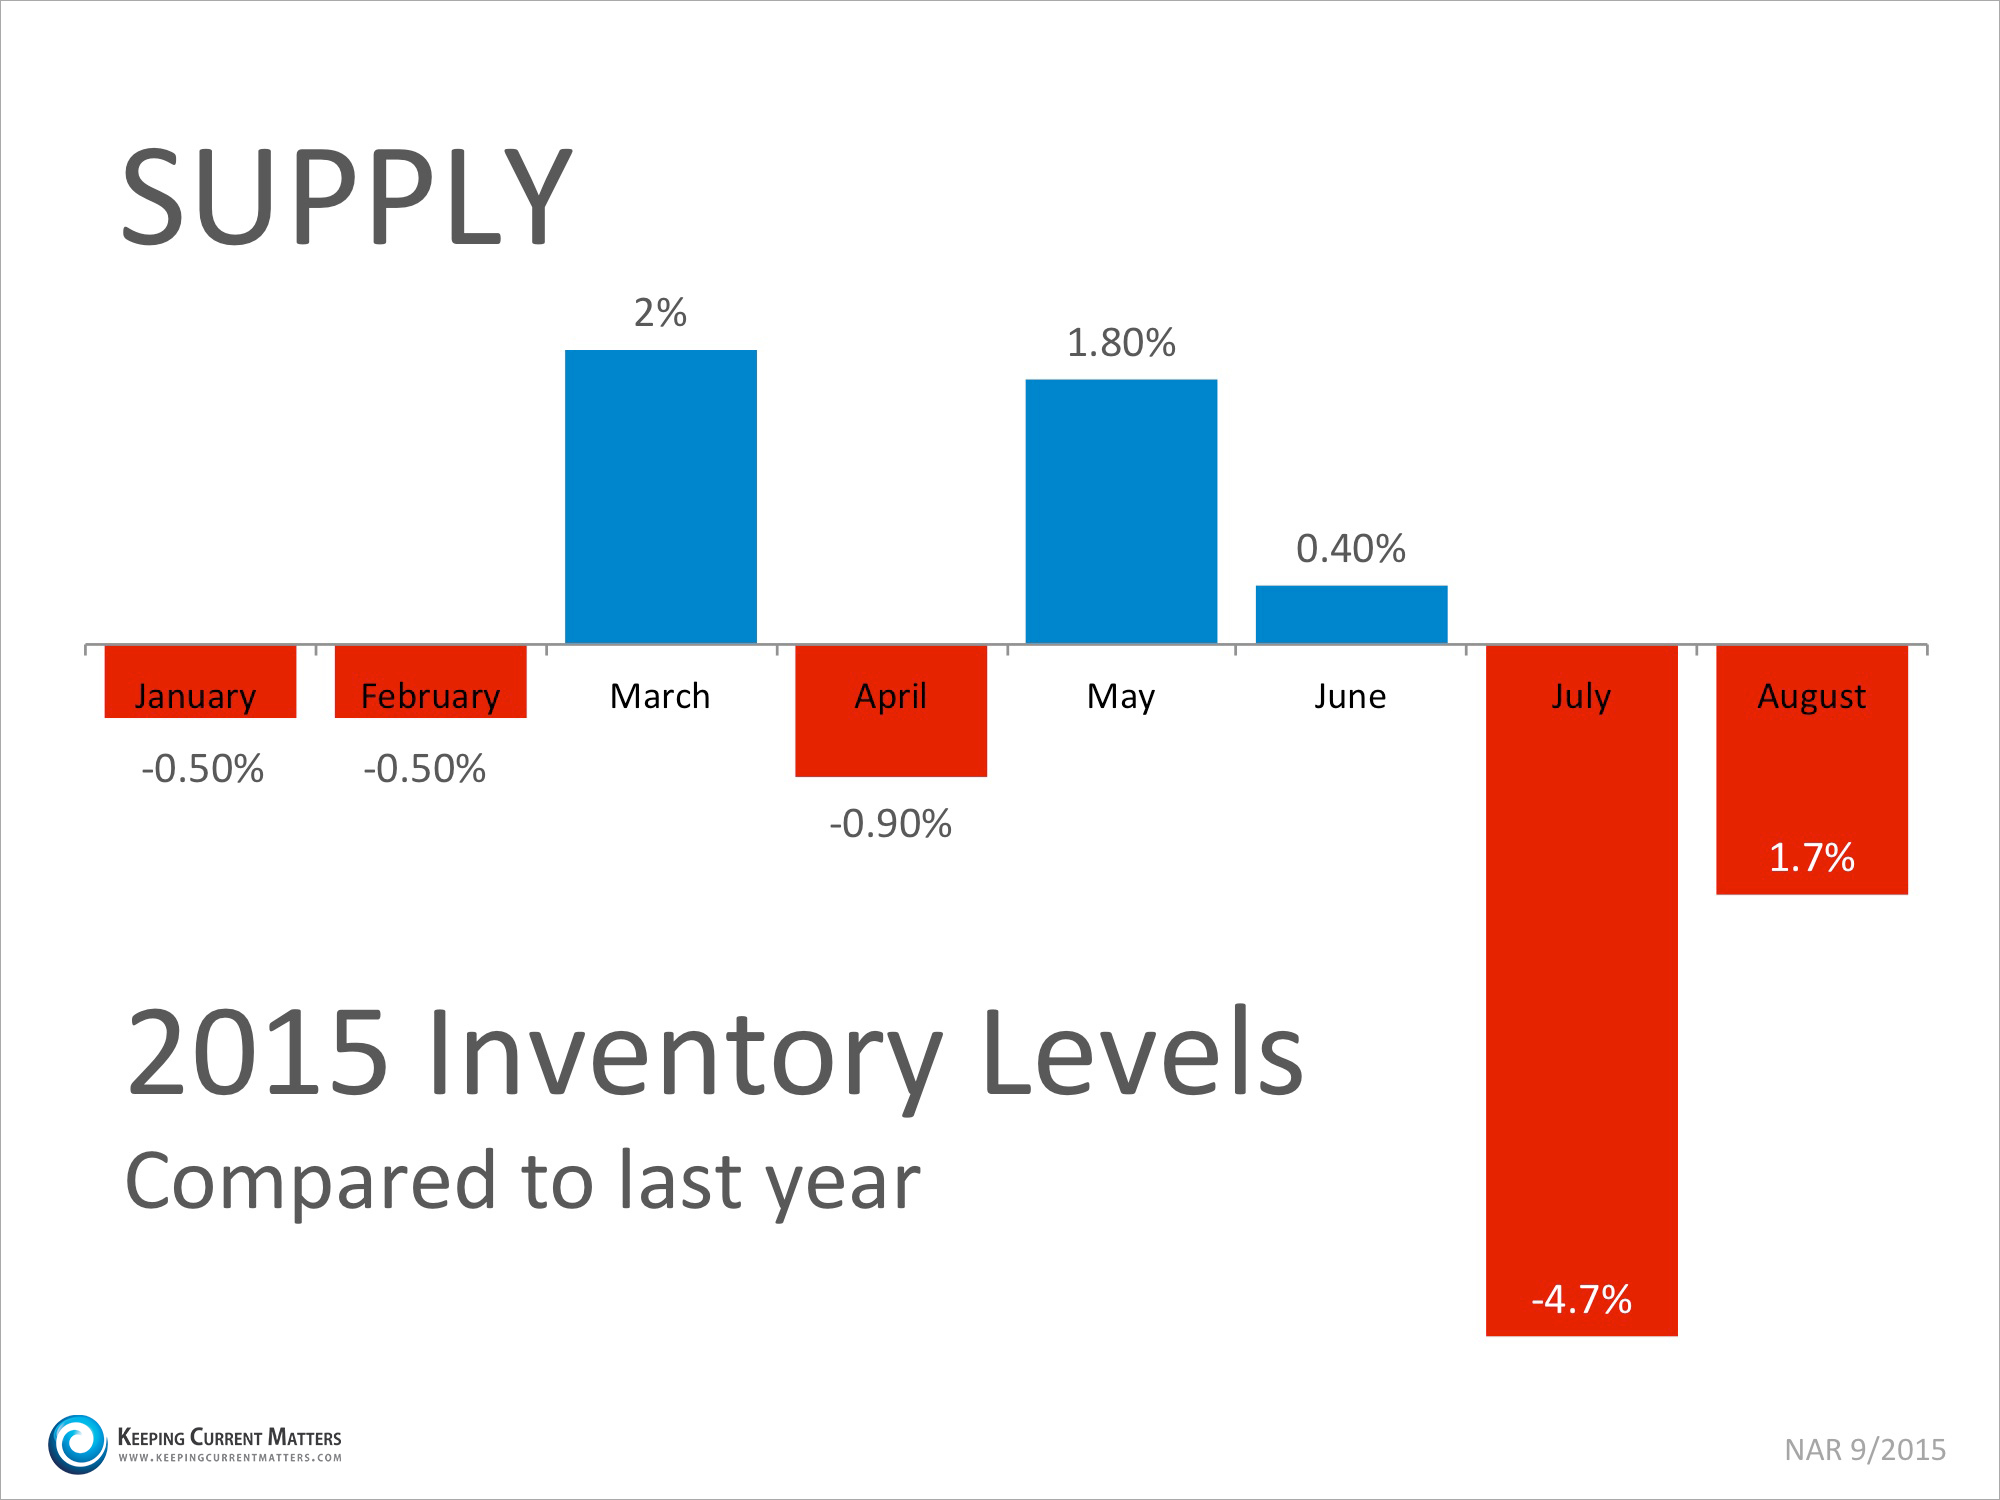 Inventory Supply | Keeping Current Matters